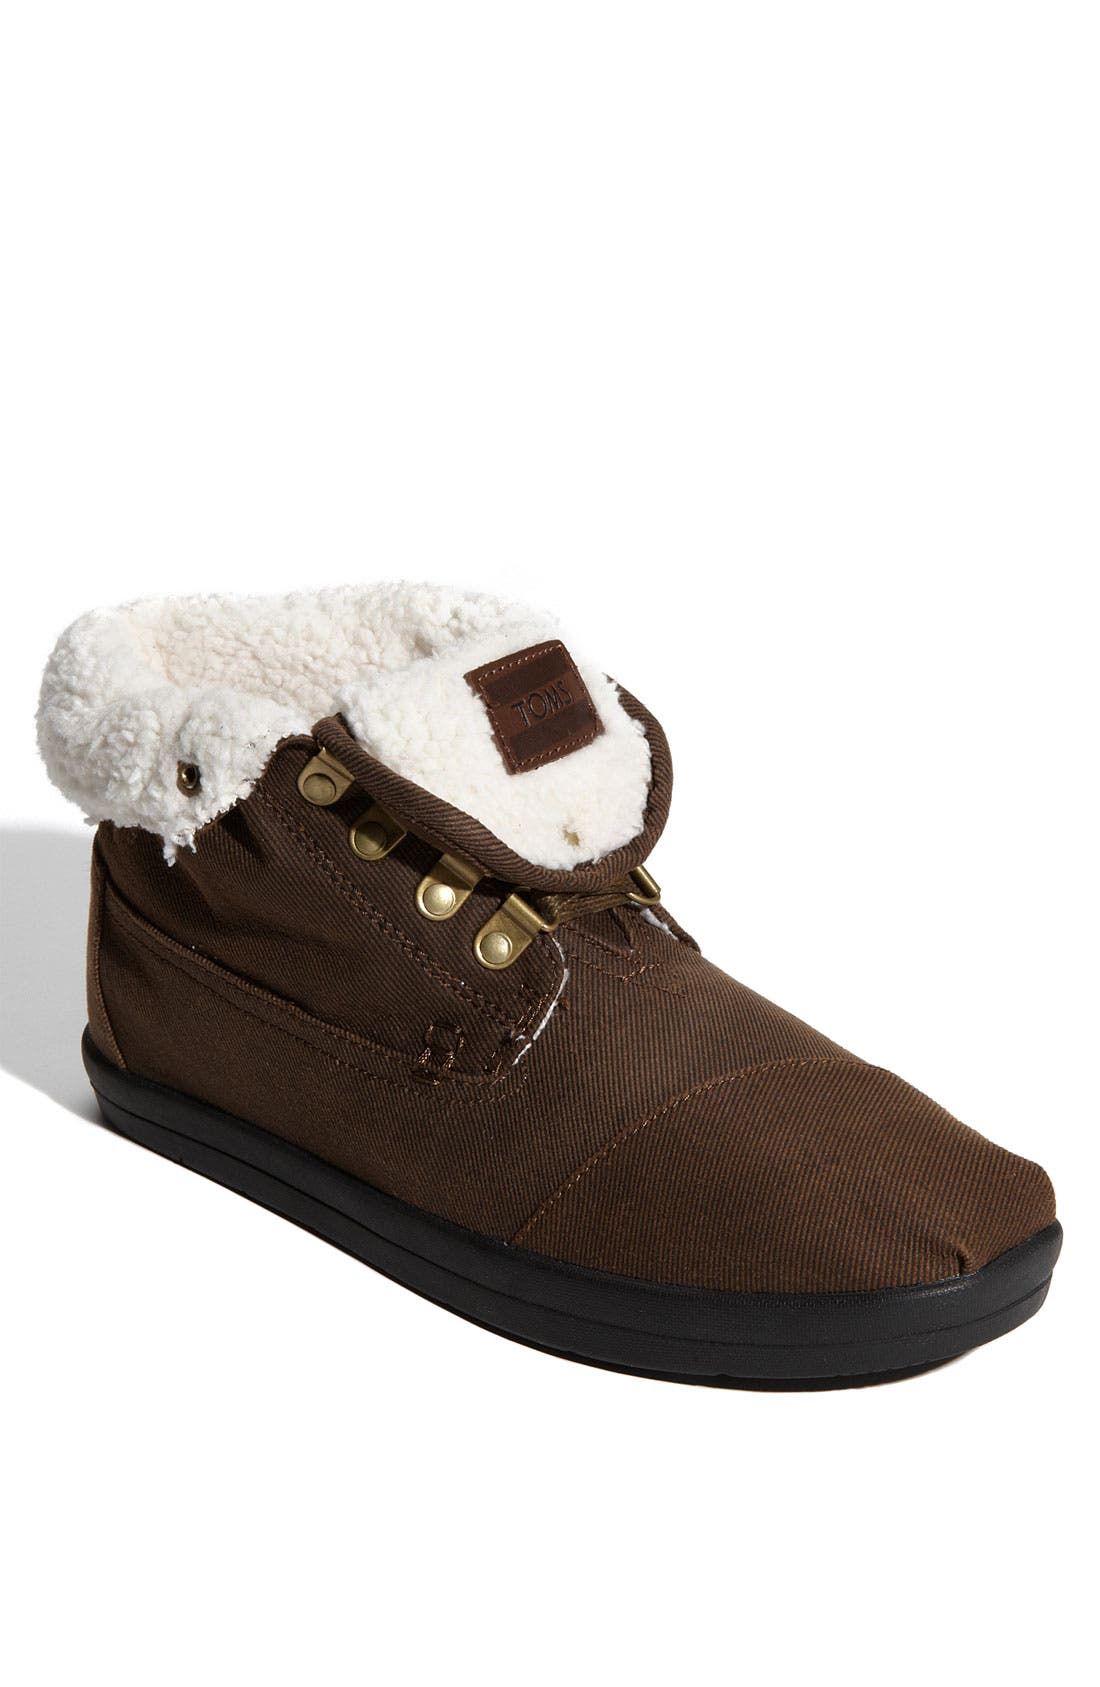 Alternate Image 1 Selected - TOMS 'Highlands' Fleece Boot (Men)